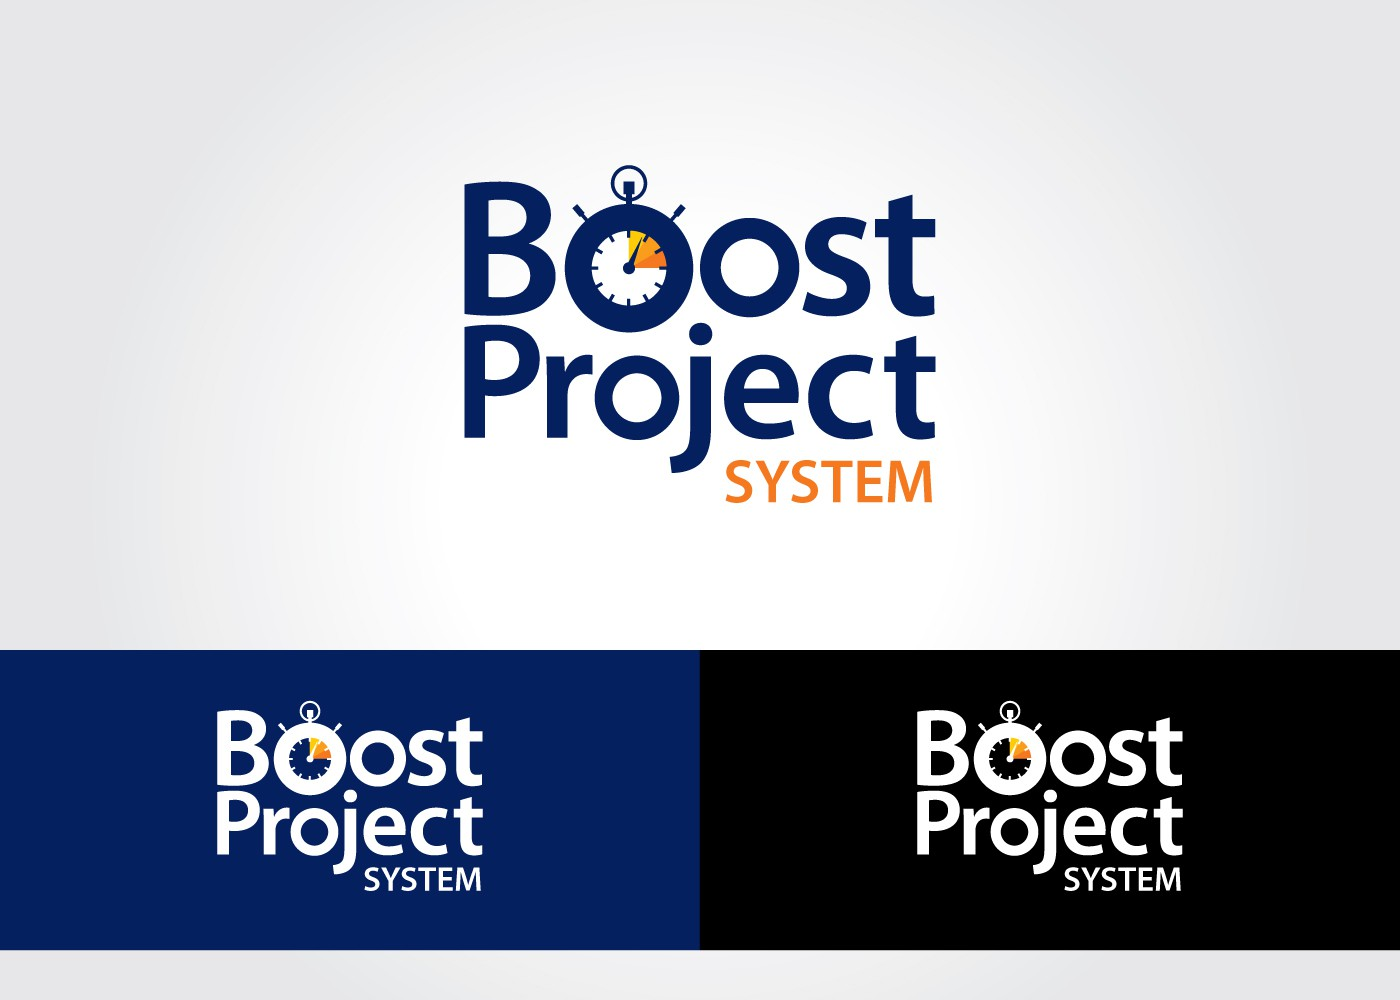 Boost Project System needs a new logo